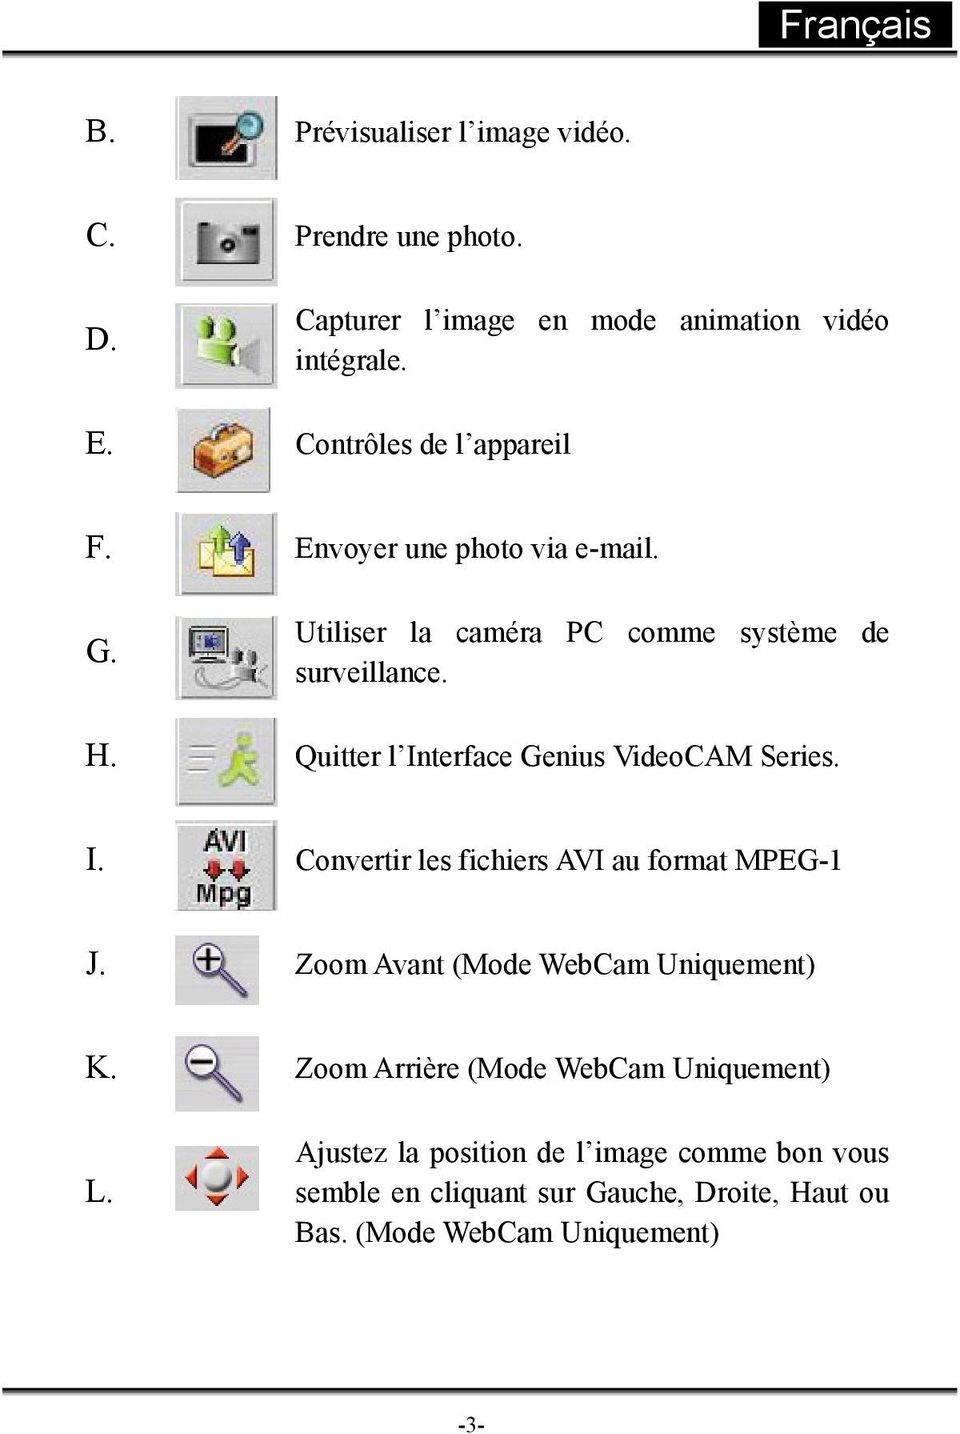 Quitter l Interface Genius VideoCAM Series. I. Convertir les fichiers AVI au format MPEG-1 J. Zoom Avant (Mode WebCam Uniquement) K.